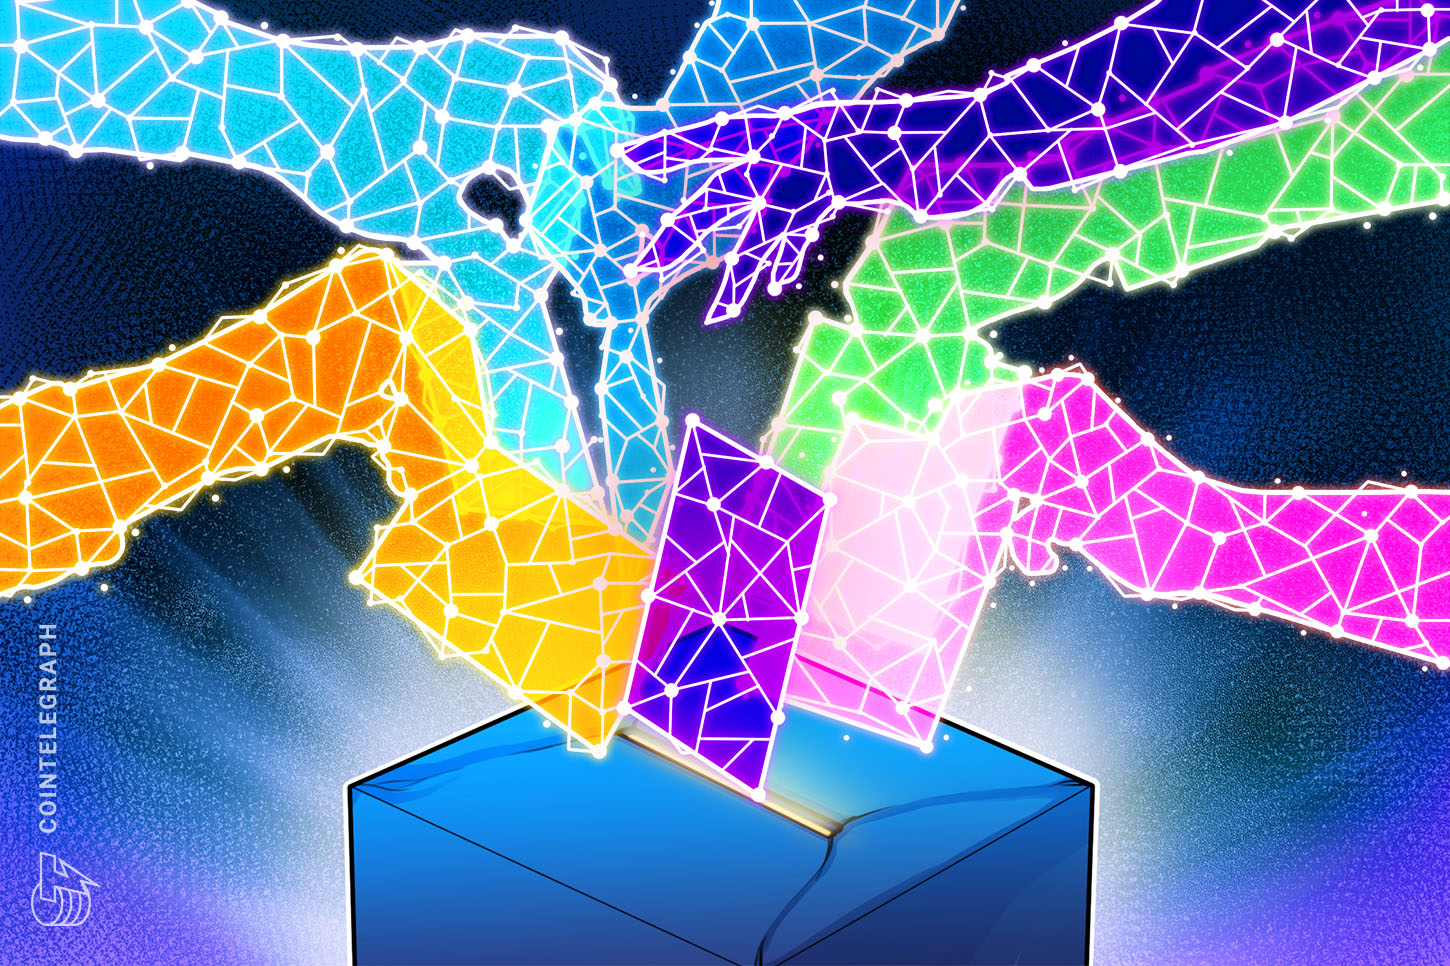 Indian State of Telangana Is Interested in Using Blockchain for E-Voting